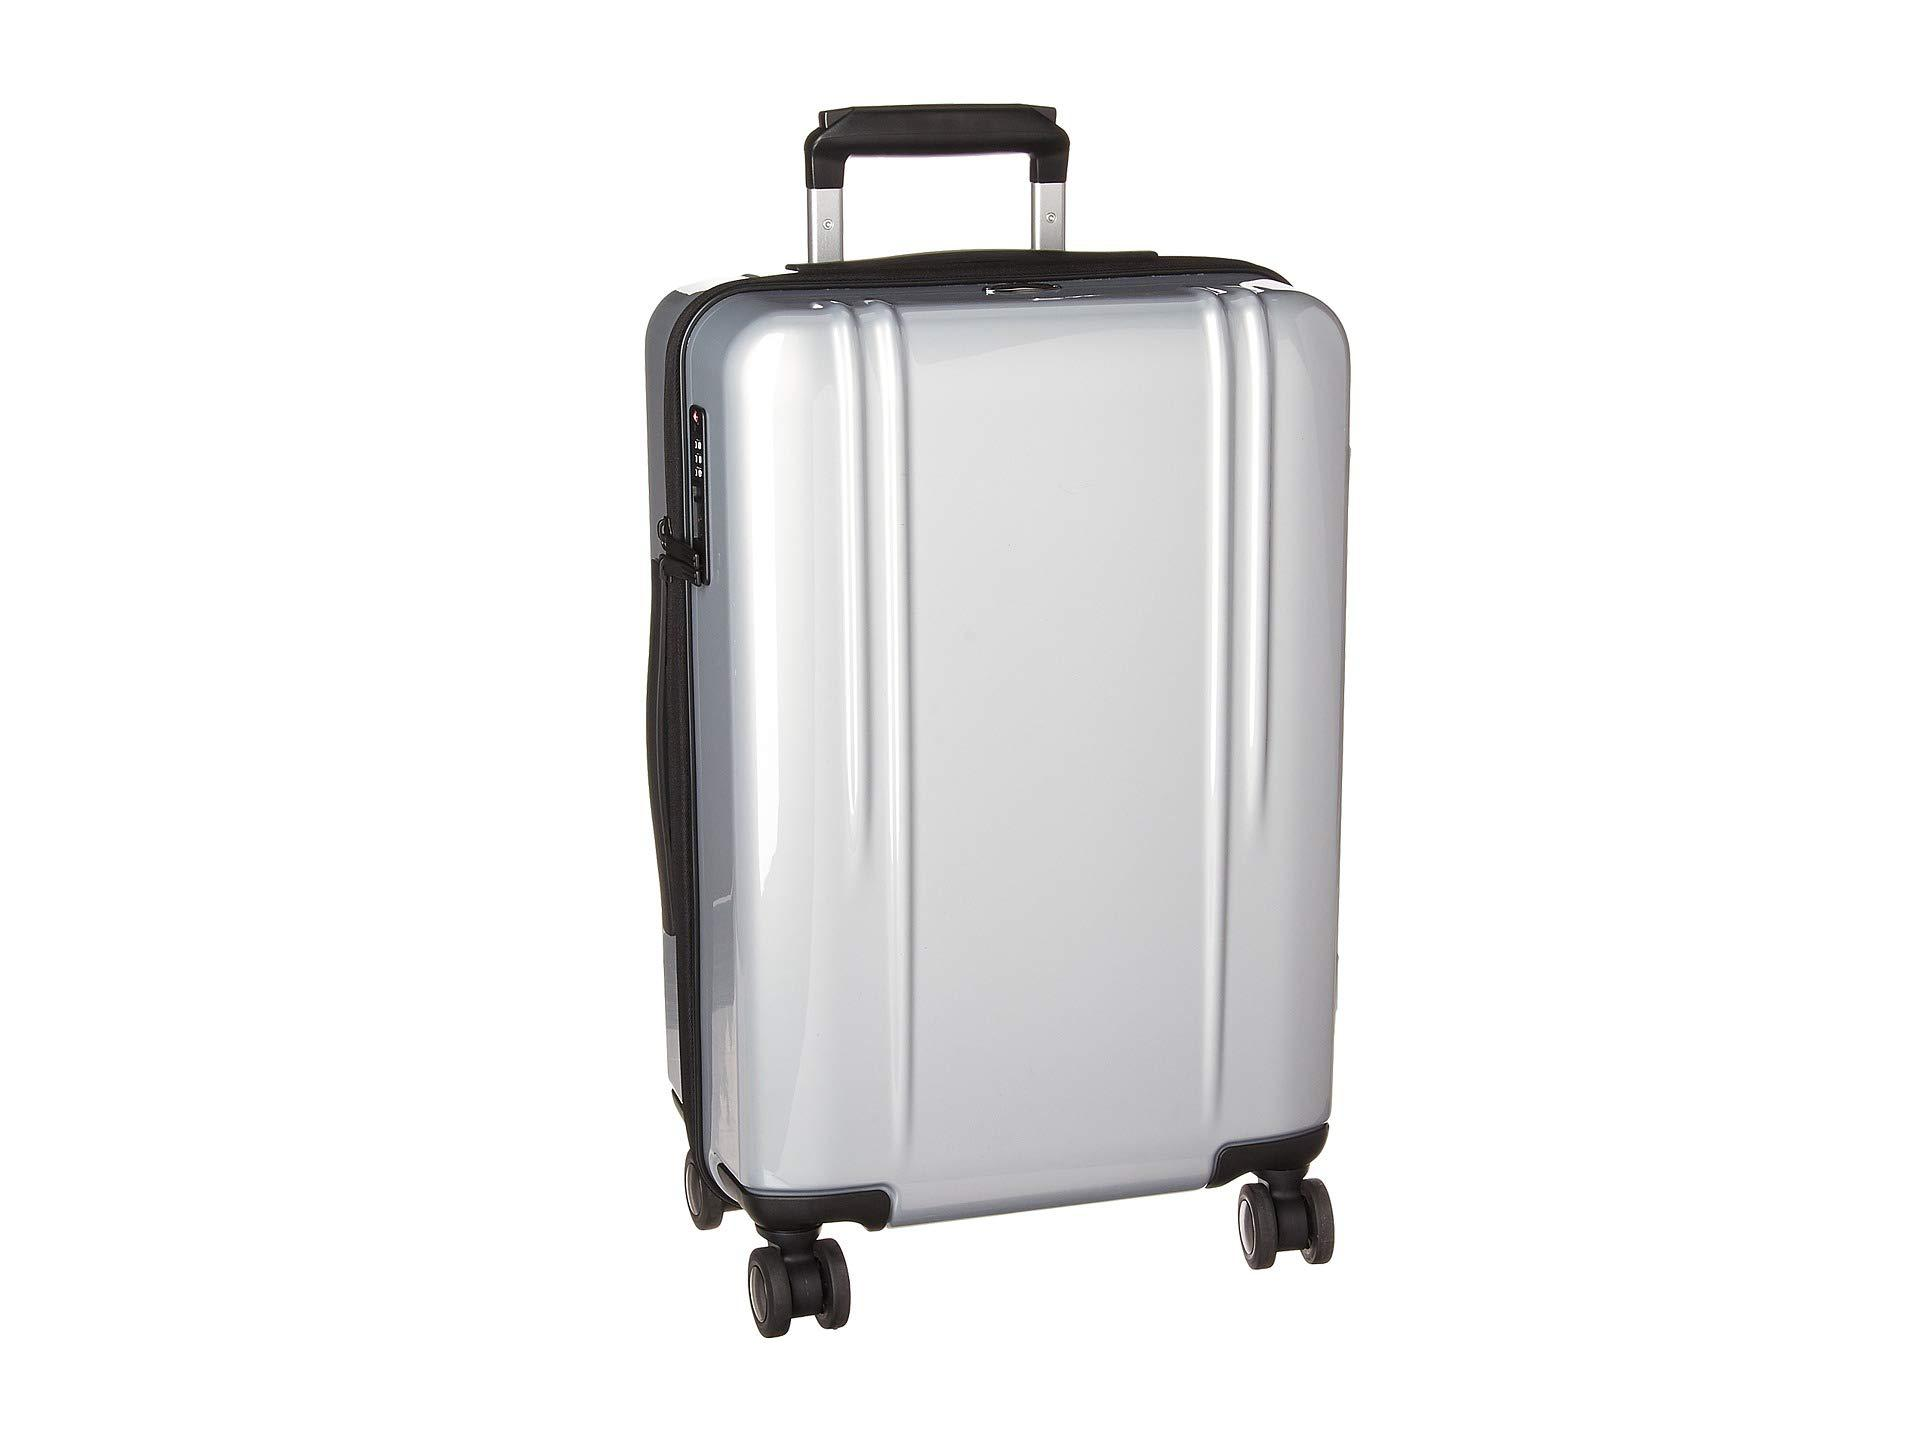 a9c95b18a Lyst - ZERO HALLIBURTON Zrl Polycarbonate 22 - Domestic Carry-on ...